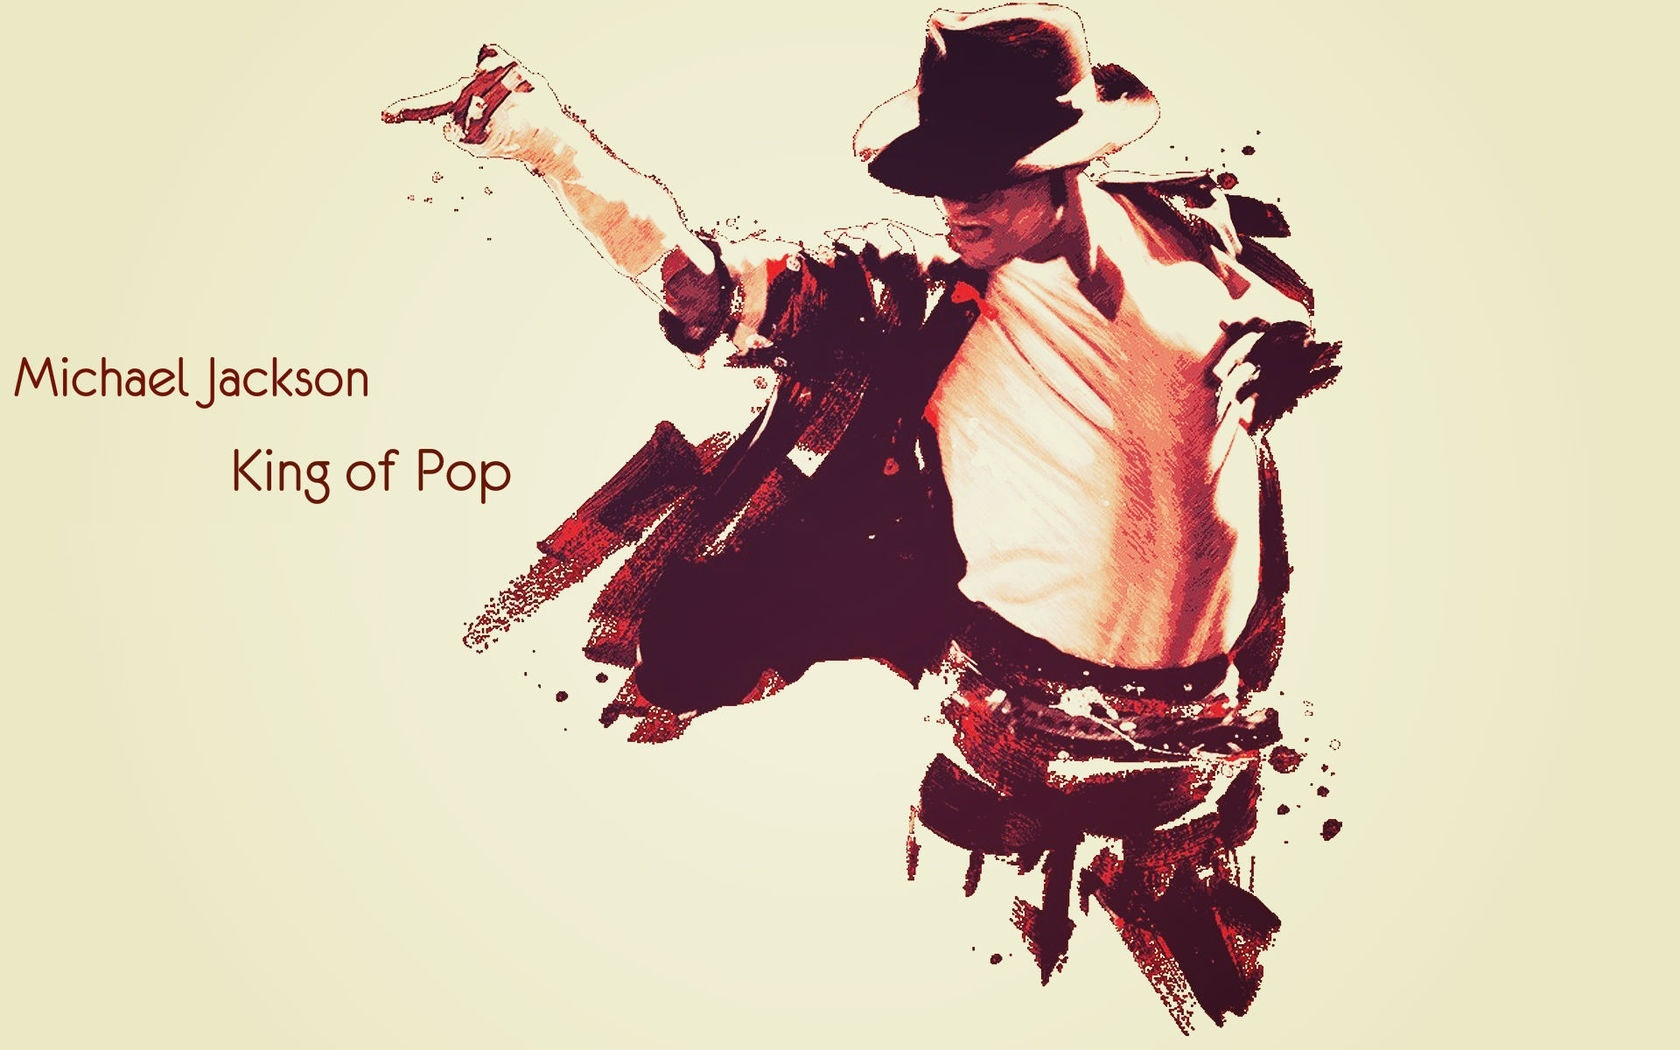 michael jackson art wallpapers - 1680x1050 - 284047